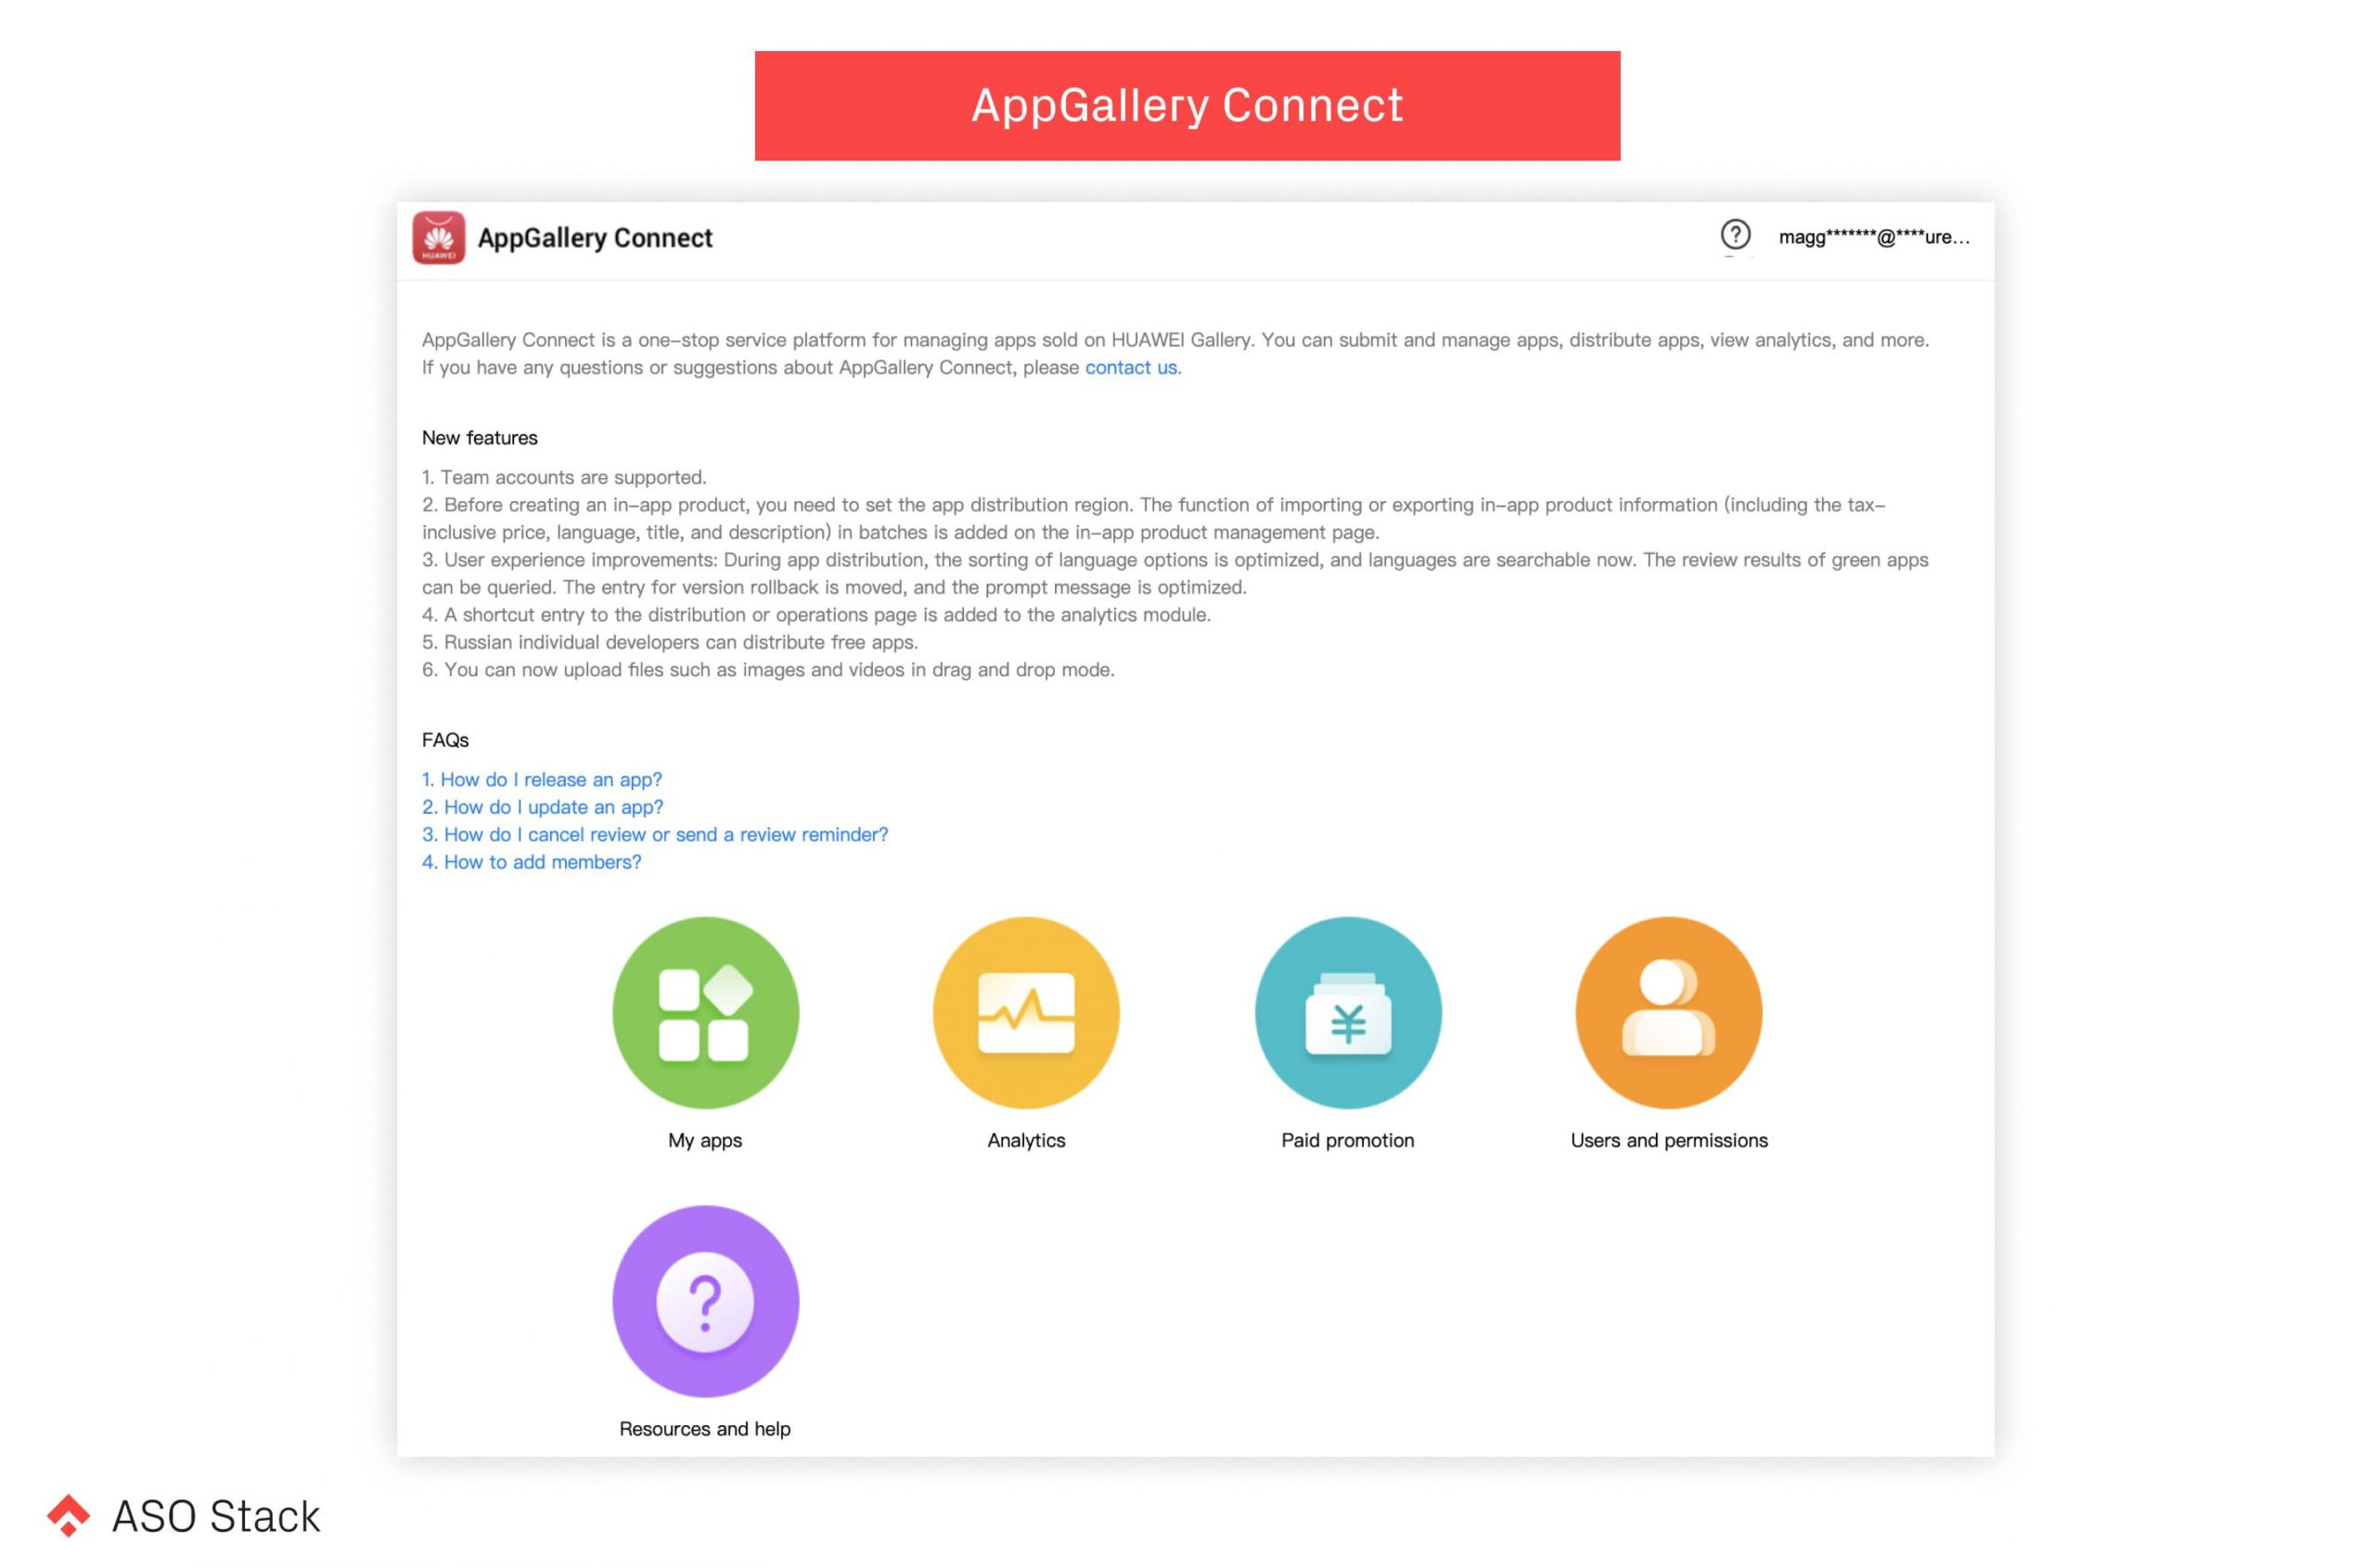 appgallery connect